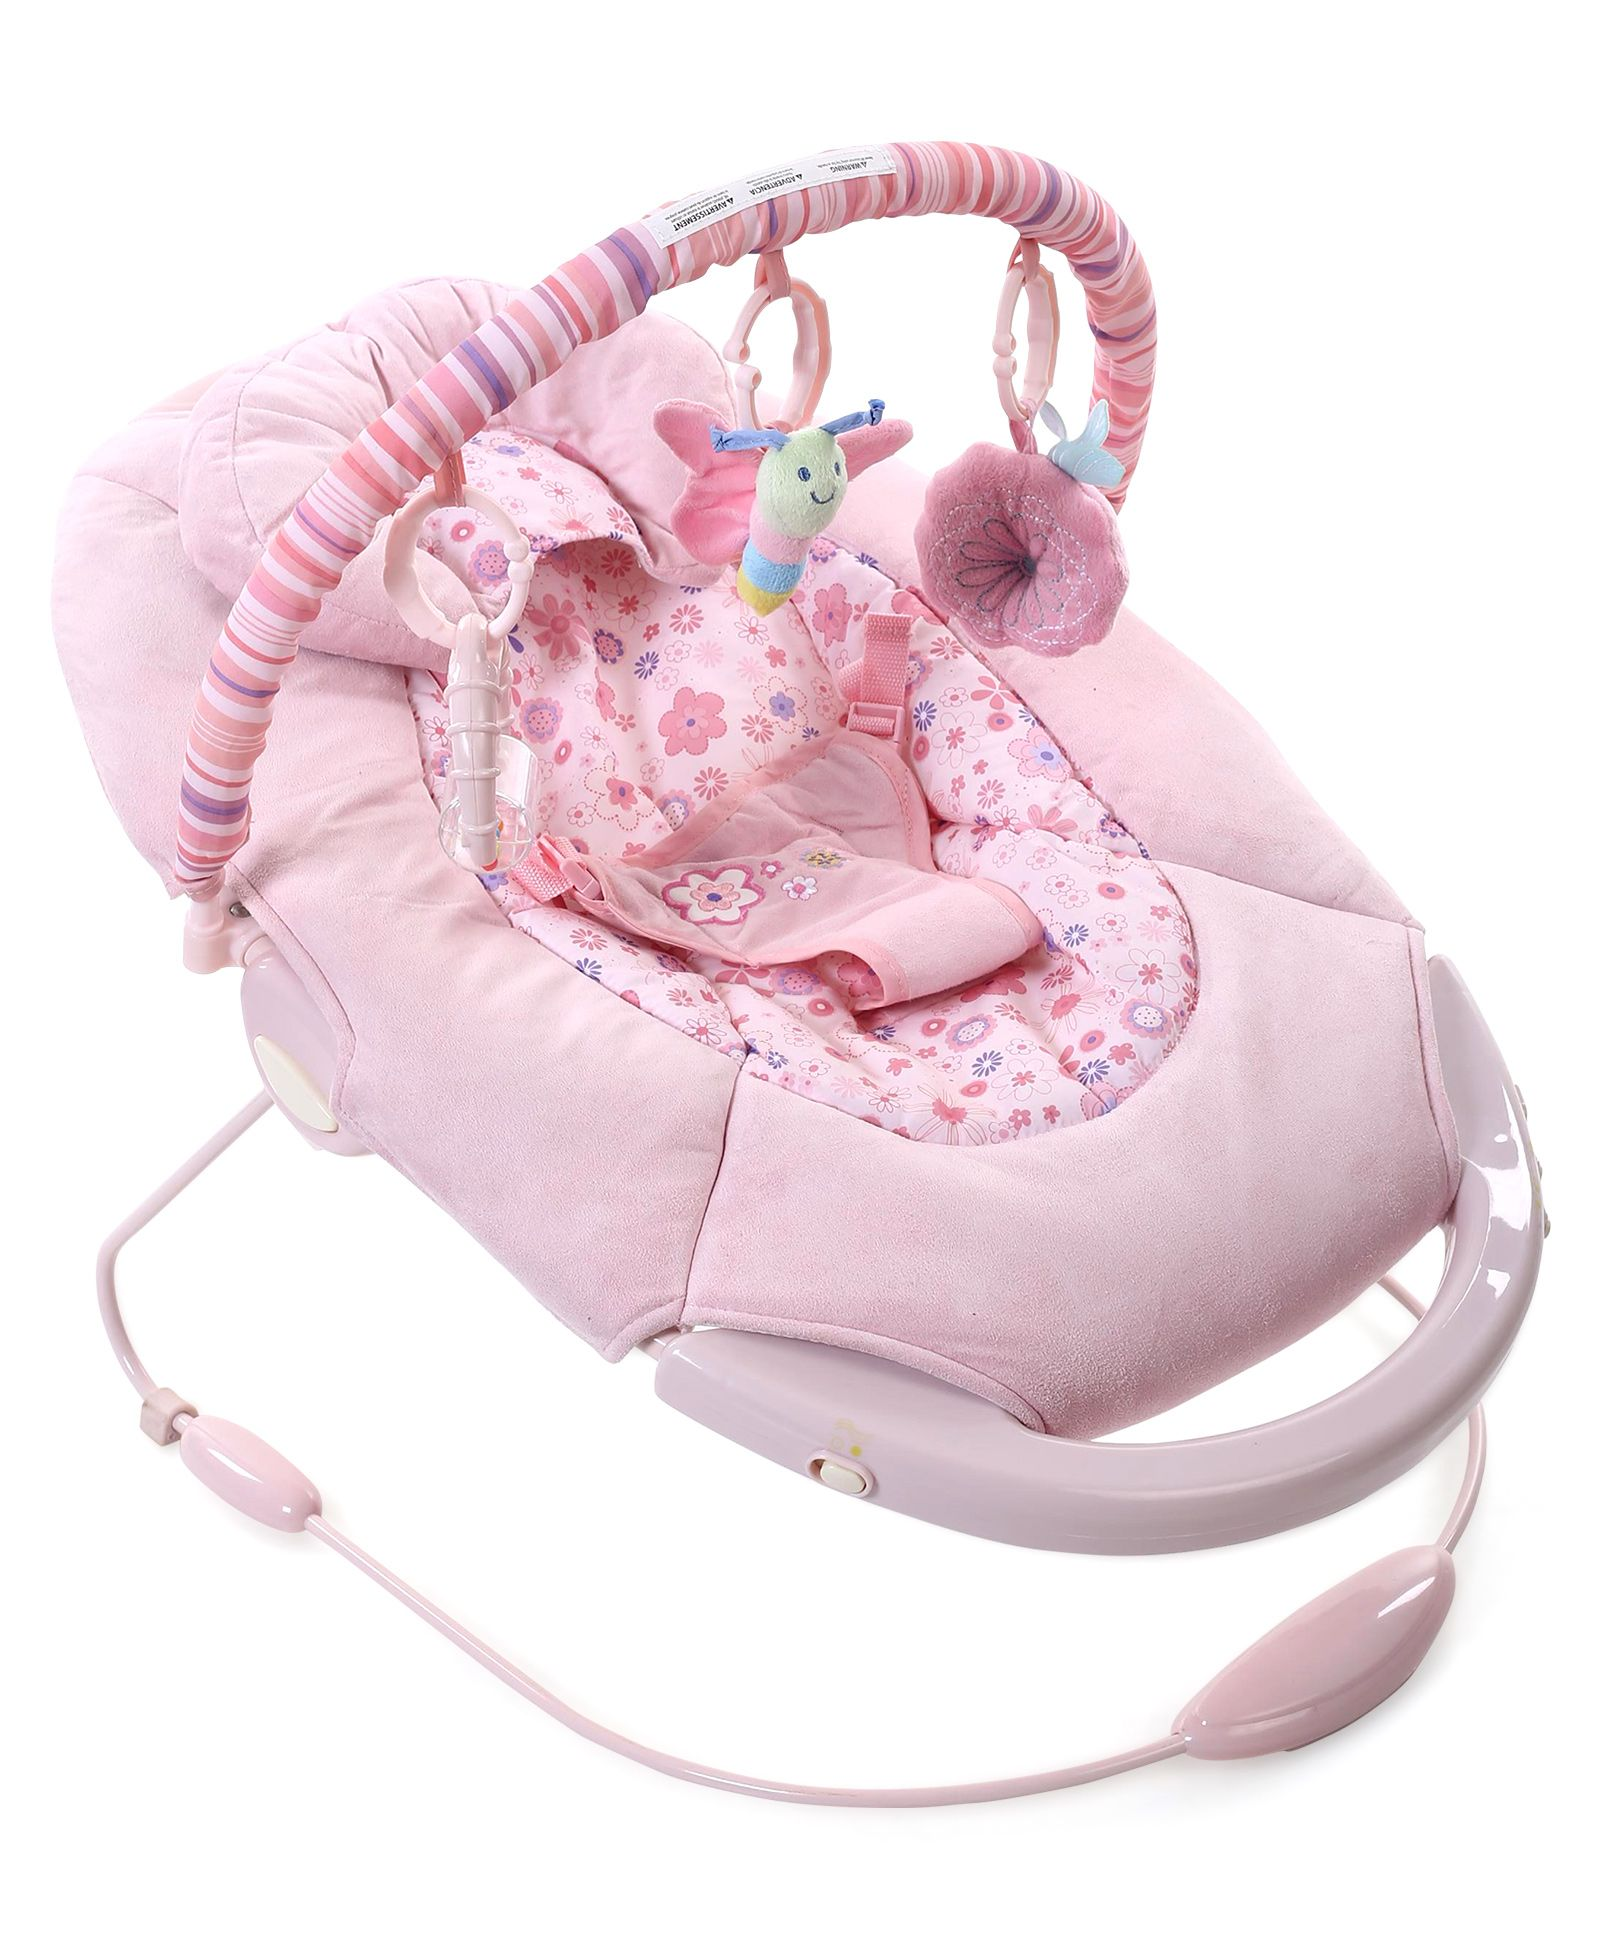 Baby Cradle And Soothing Vibrations Bouncer Floral Print - Pink